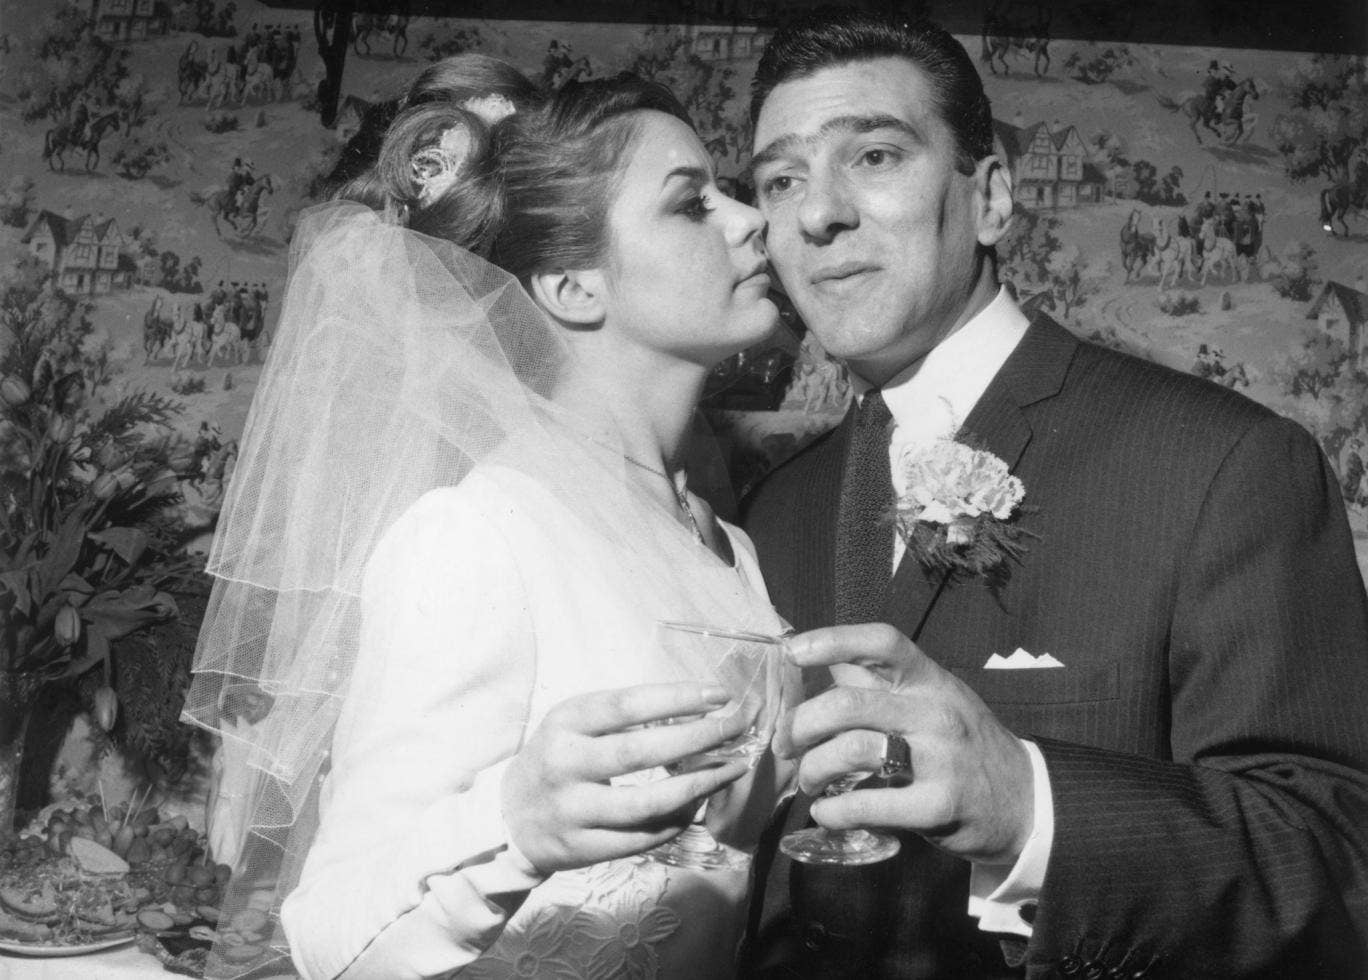 King Richard Iii Reggie Kray And Frances Shea On Their Wedding Day In 1965